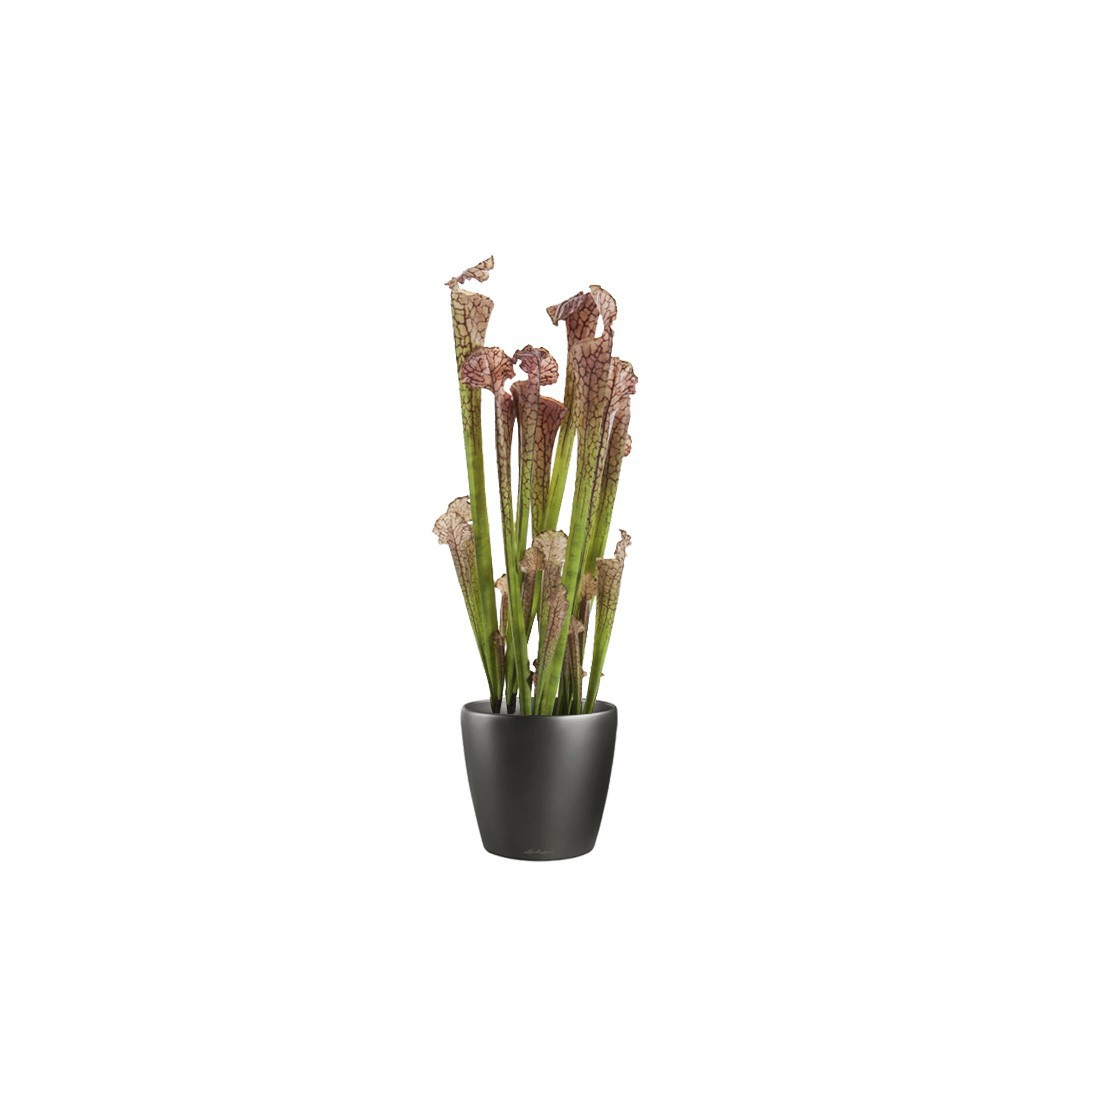 cheap plante carnivore entretien intrieur sarracenia plante carnivore cm plantes with plantes. Black Bedroom Furniture Sets. Home Design Ideas